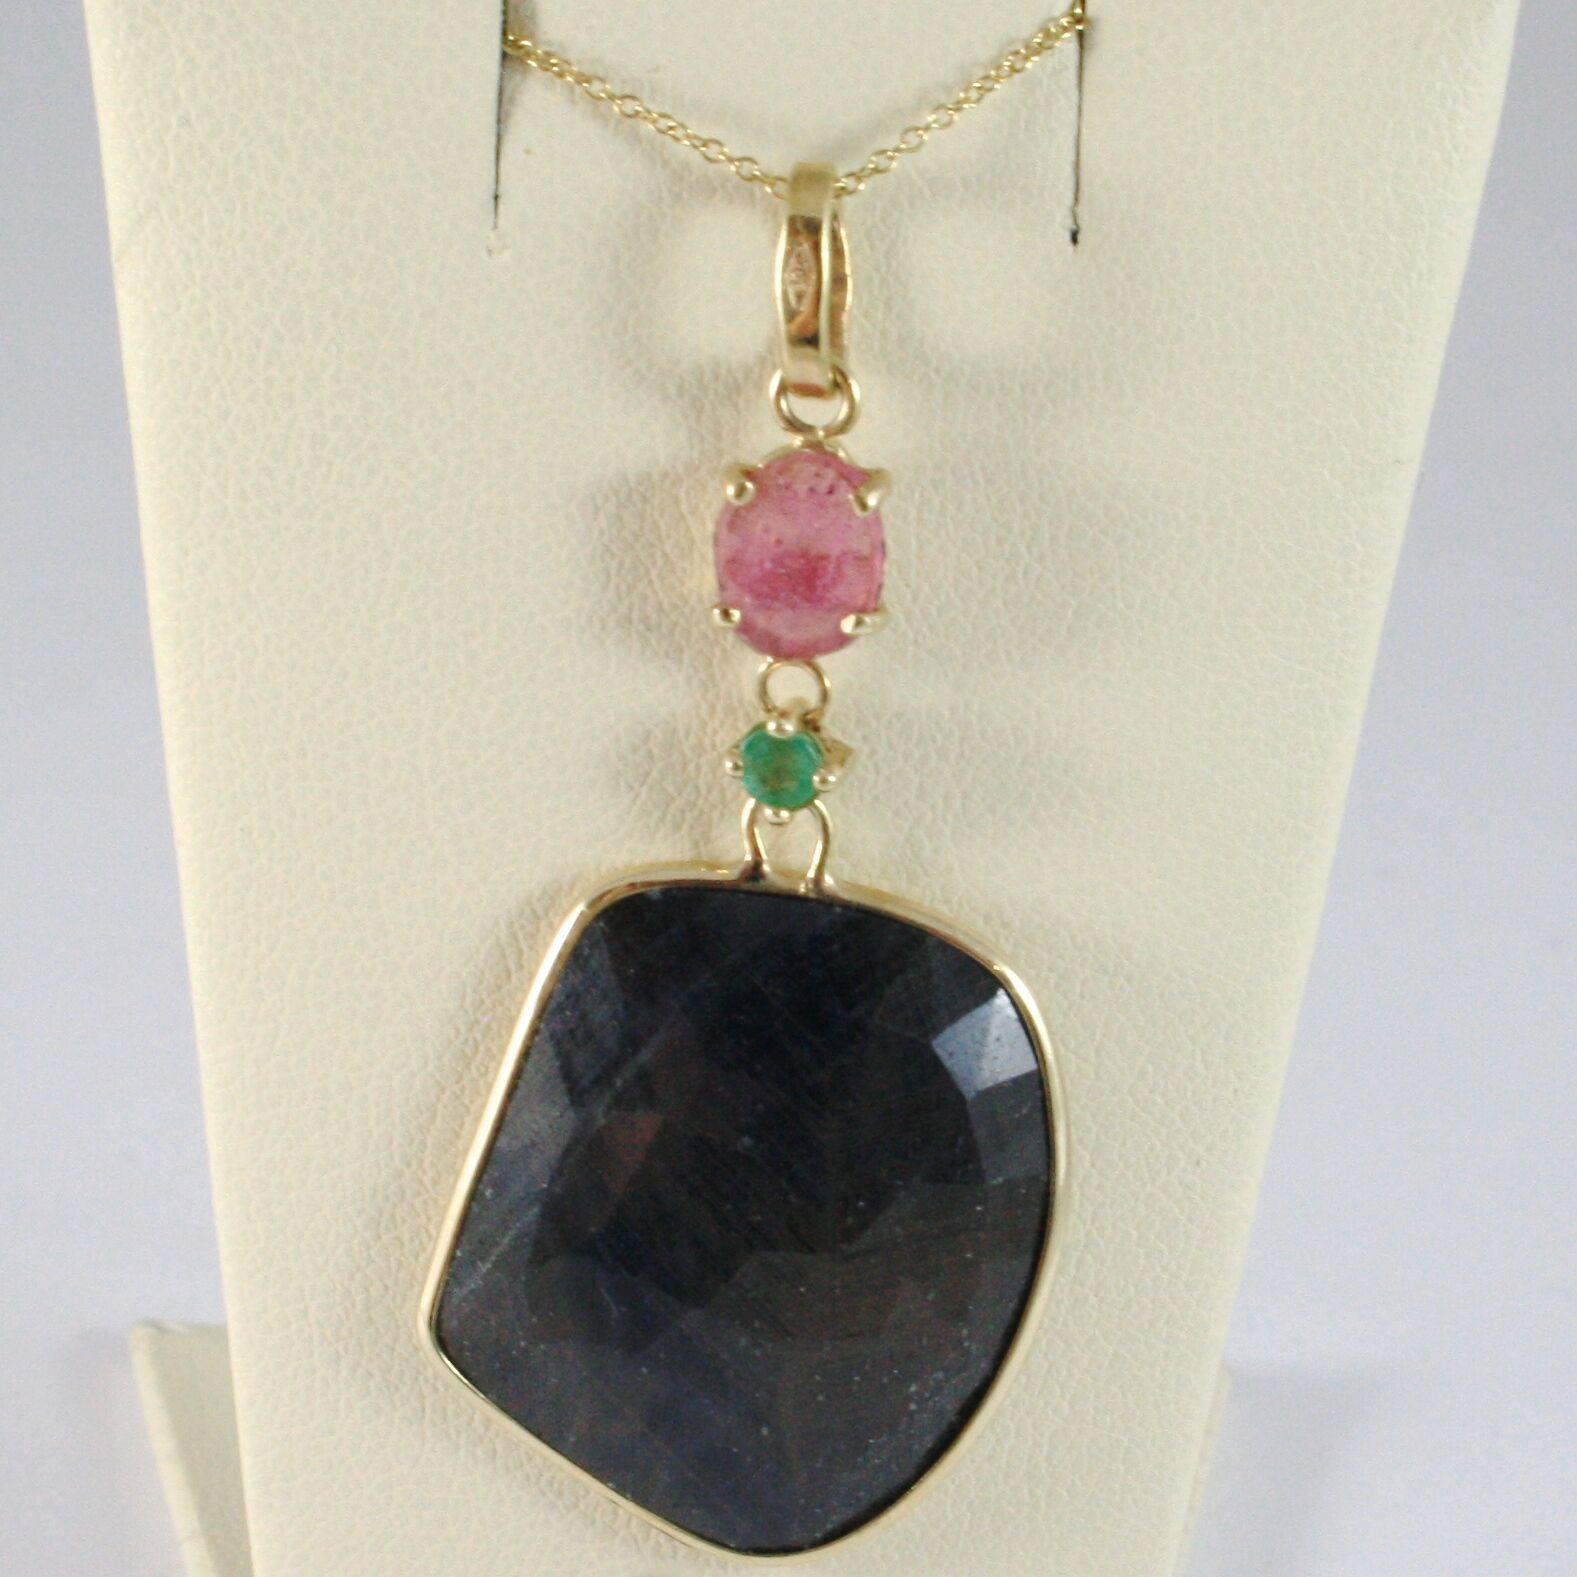 9K YELLOW GOLD NECKLACE AND PENDANT, ROUND BLUE AND OVAL PINK SAPPHIRE, PERIDOT